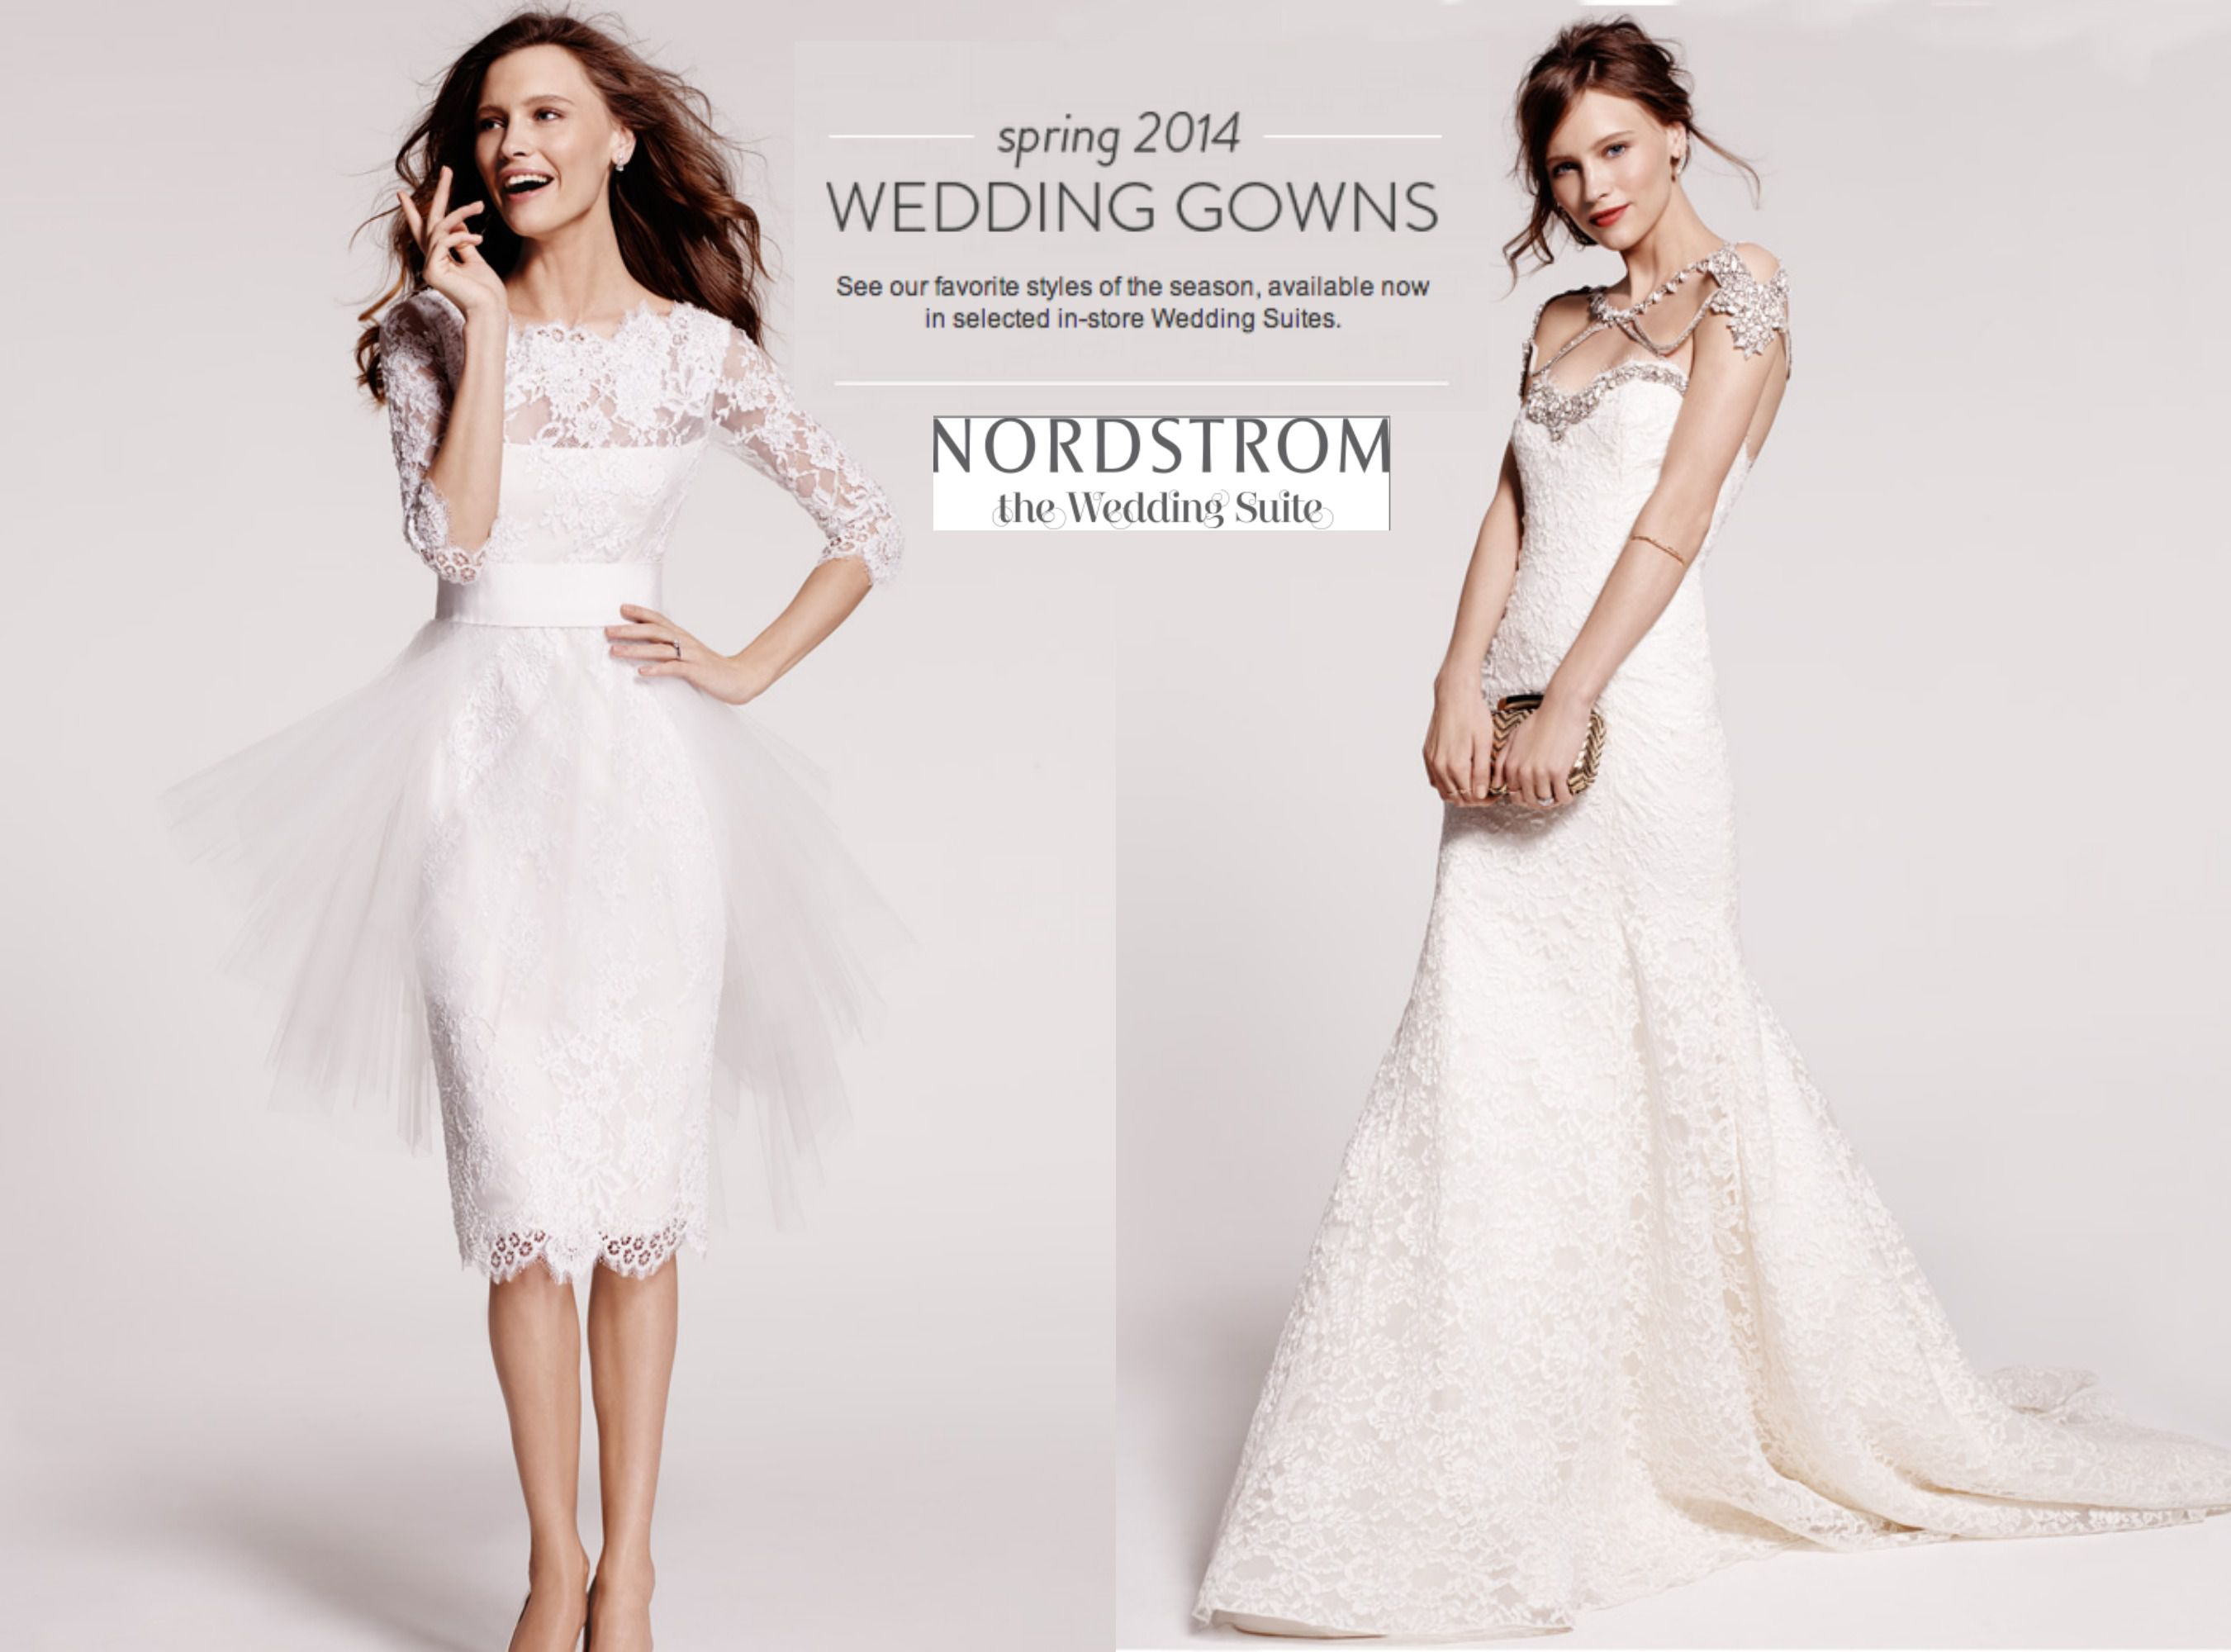 Nordstrom Wedding Suite